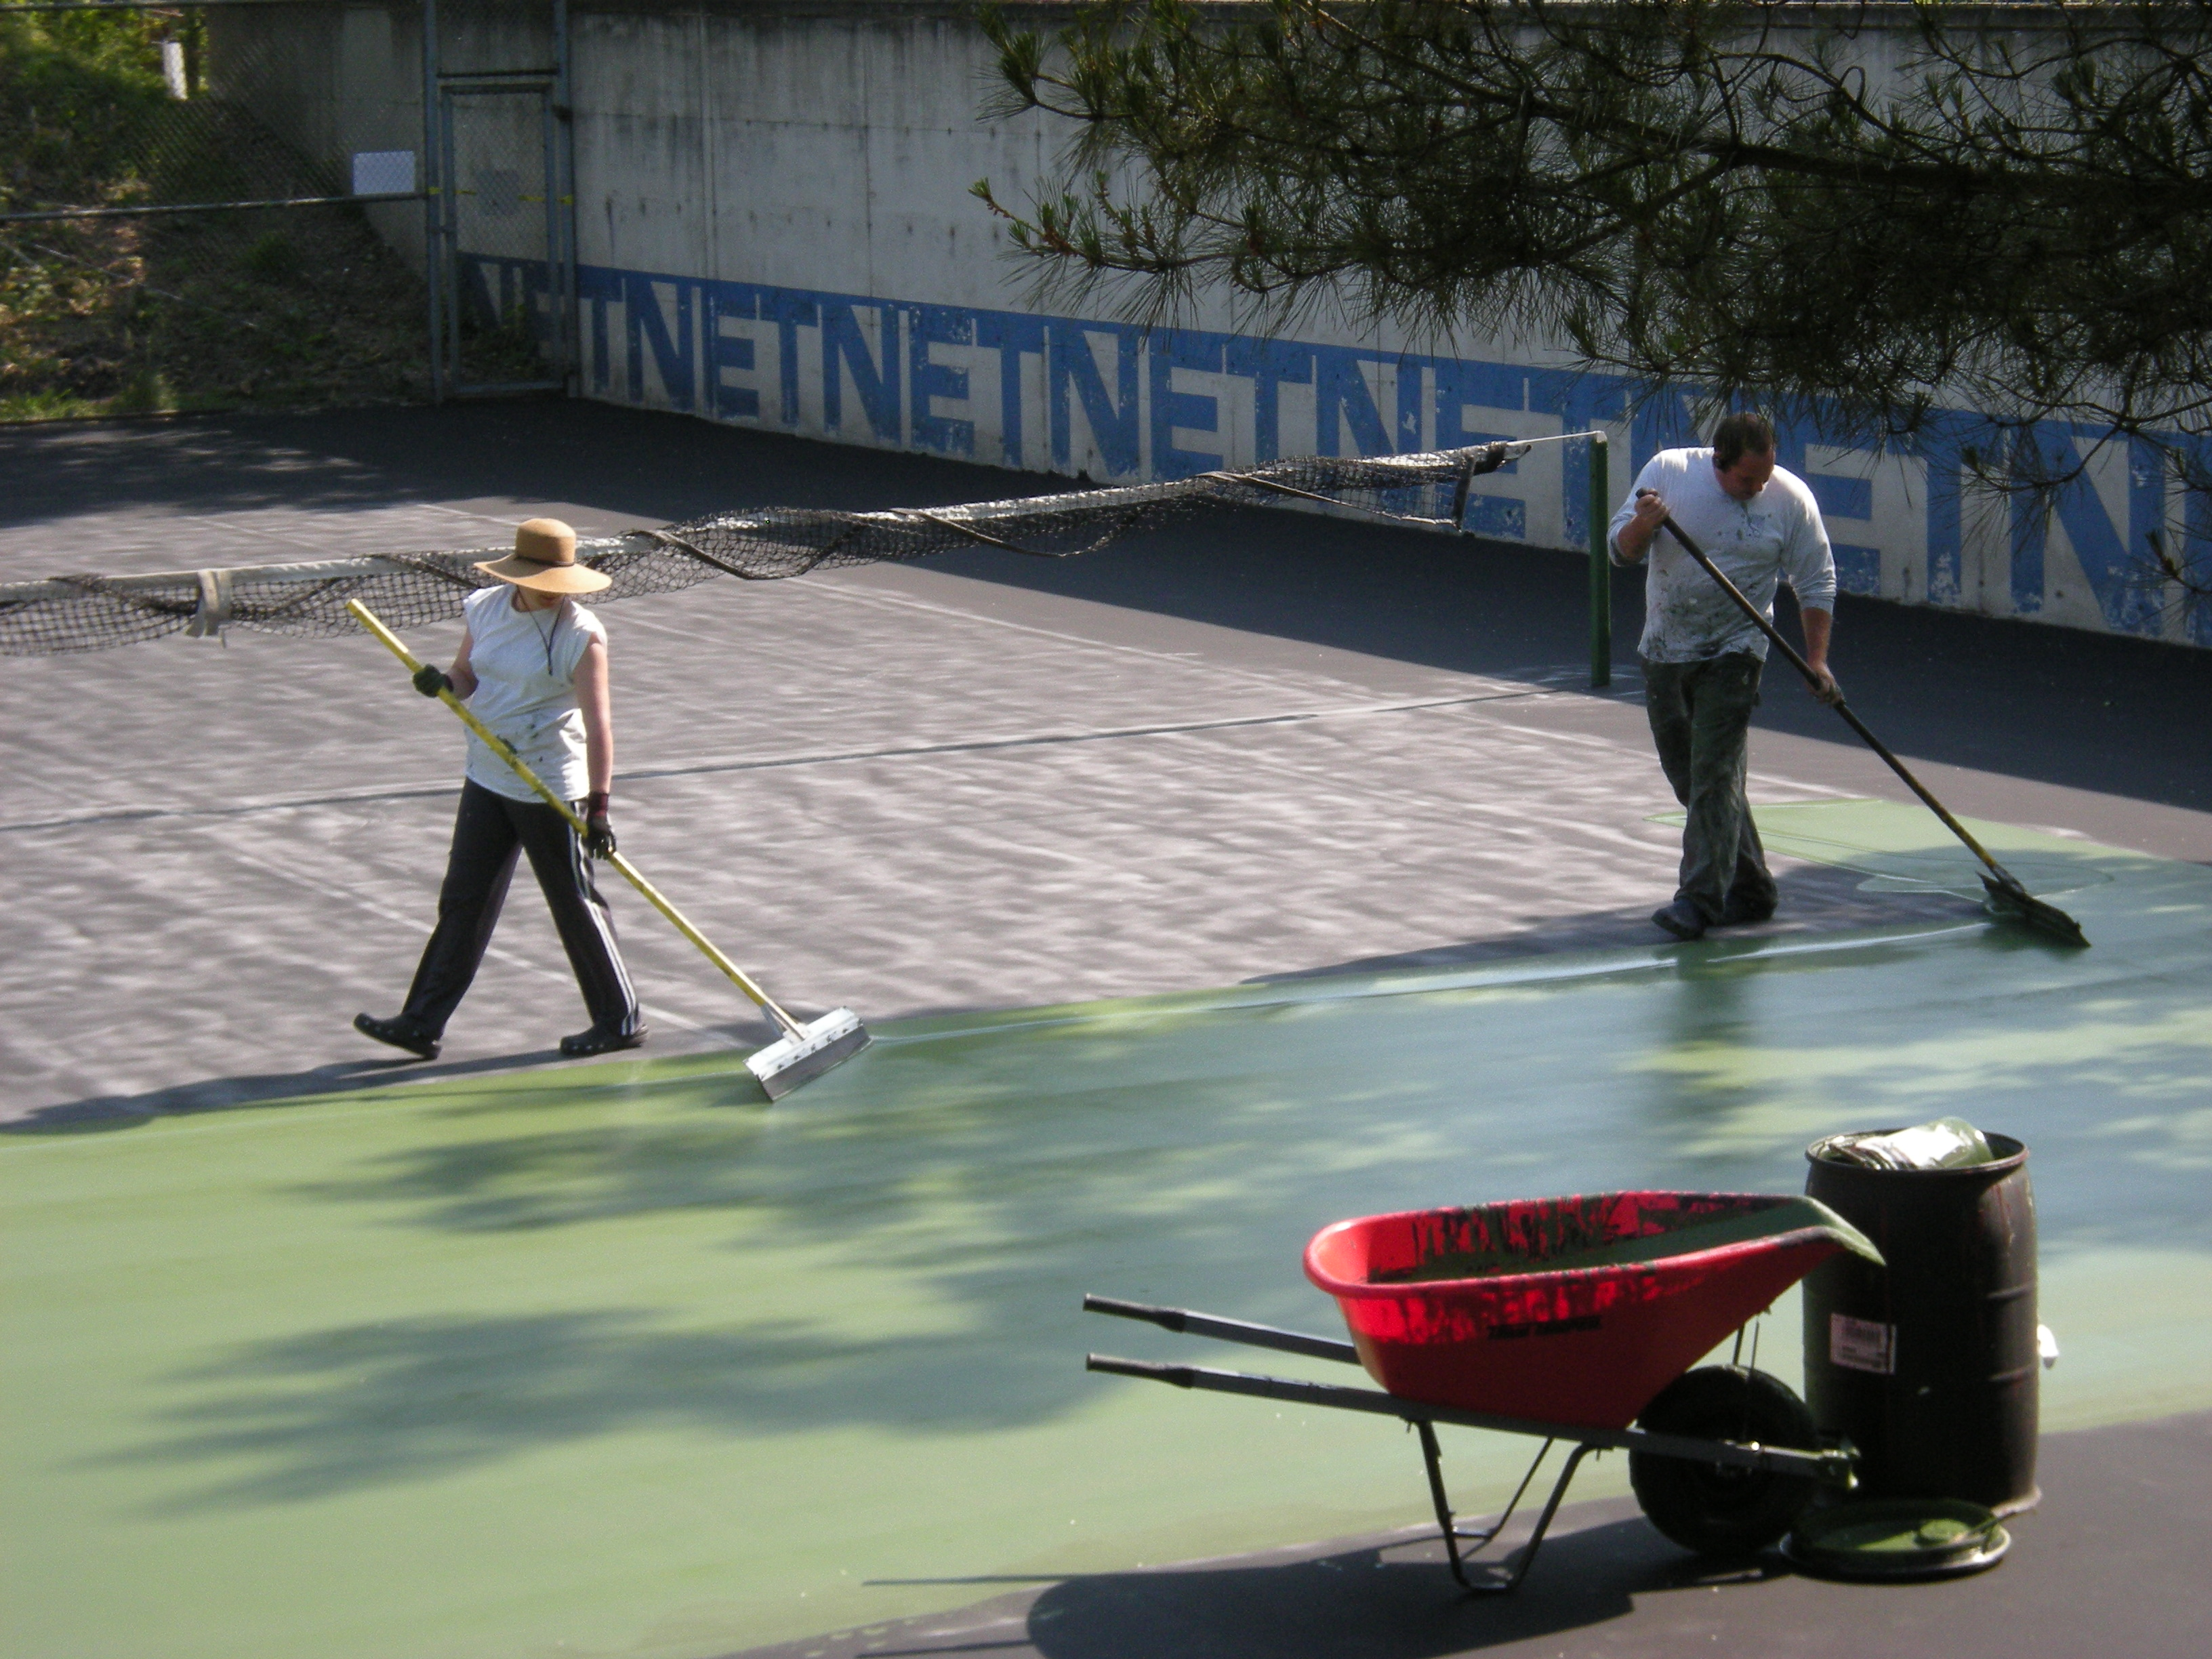 Painting surface of tennis court